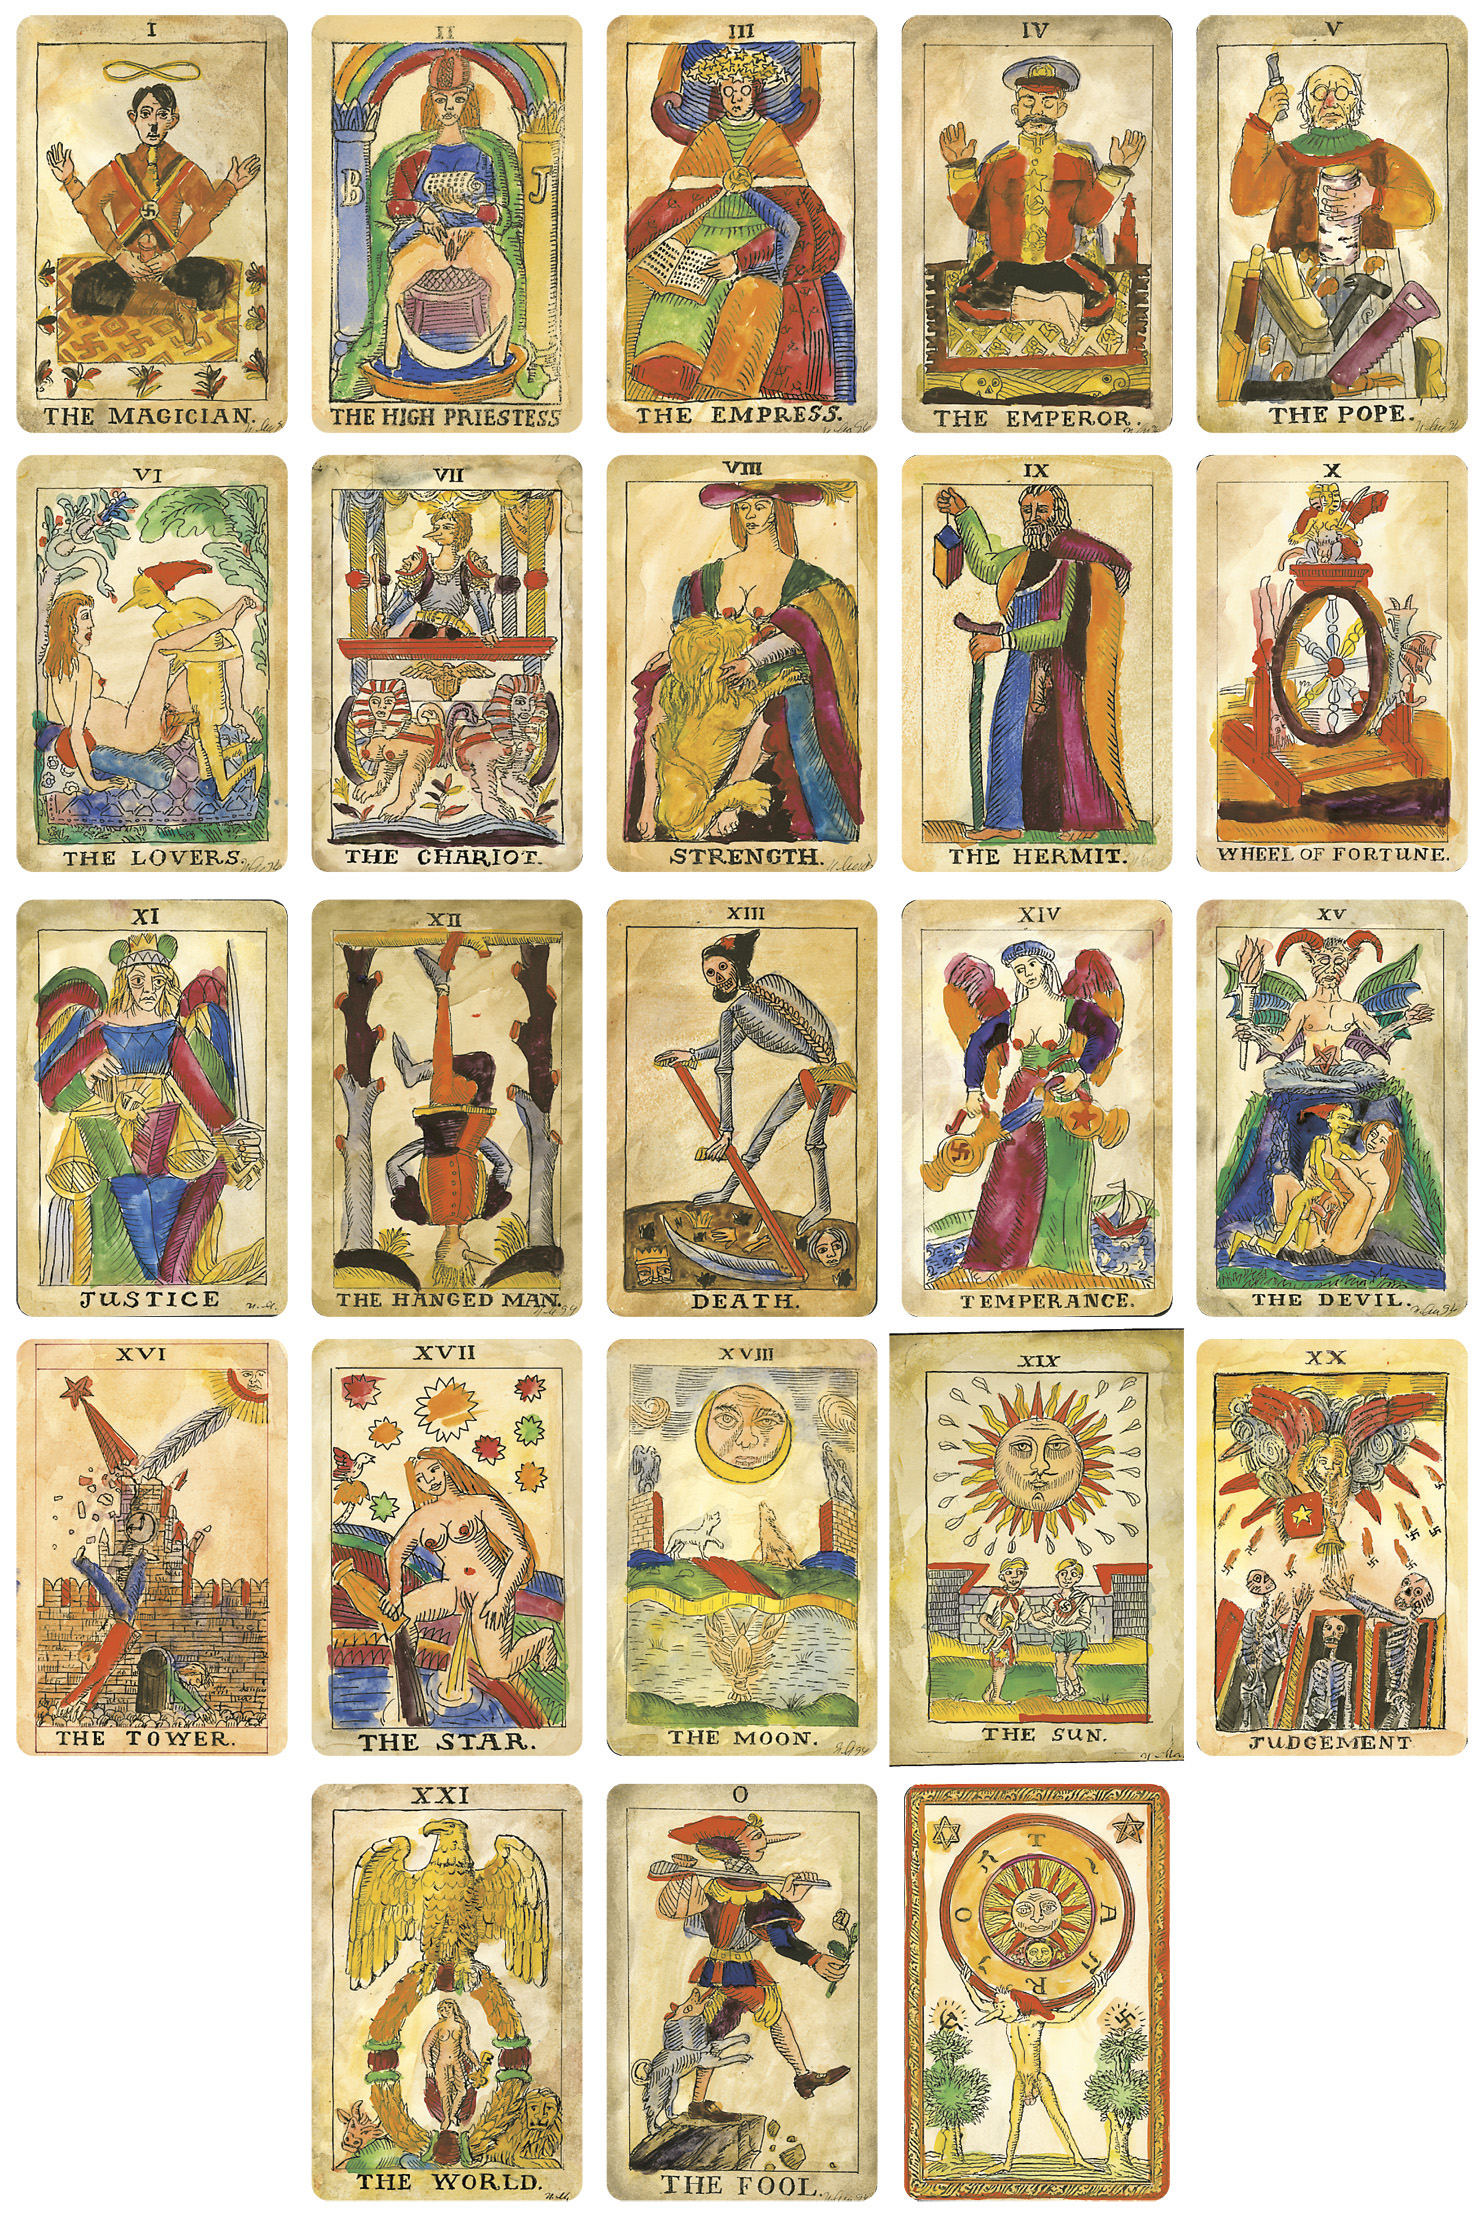 Lot 237 - Esotericum. Makarevich Tarot, a collection of 23 cards and a cover sheet